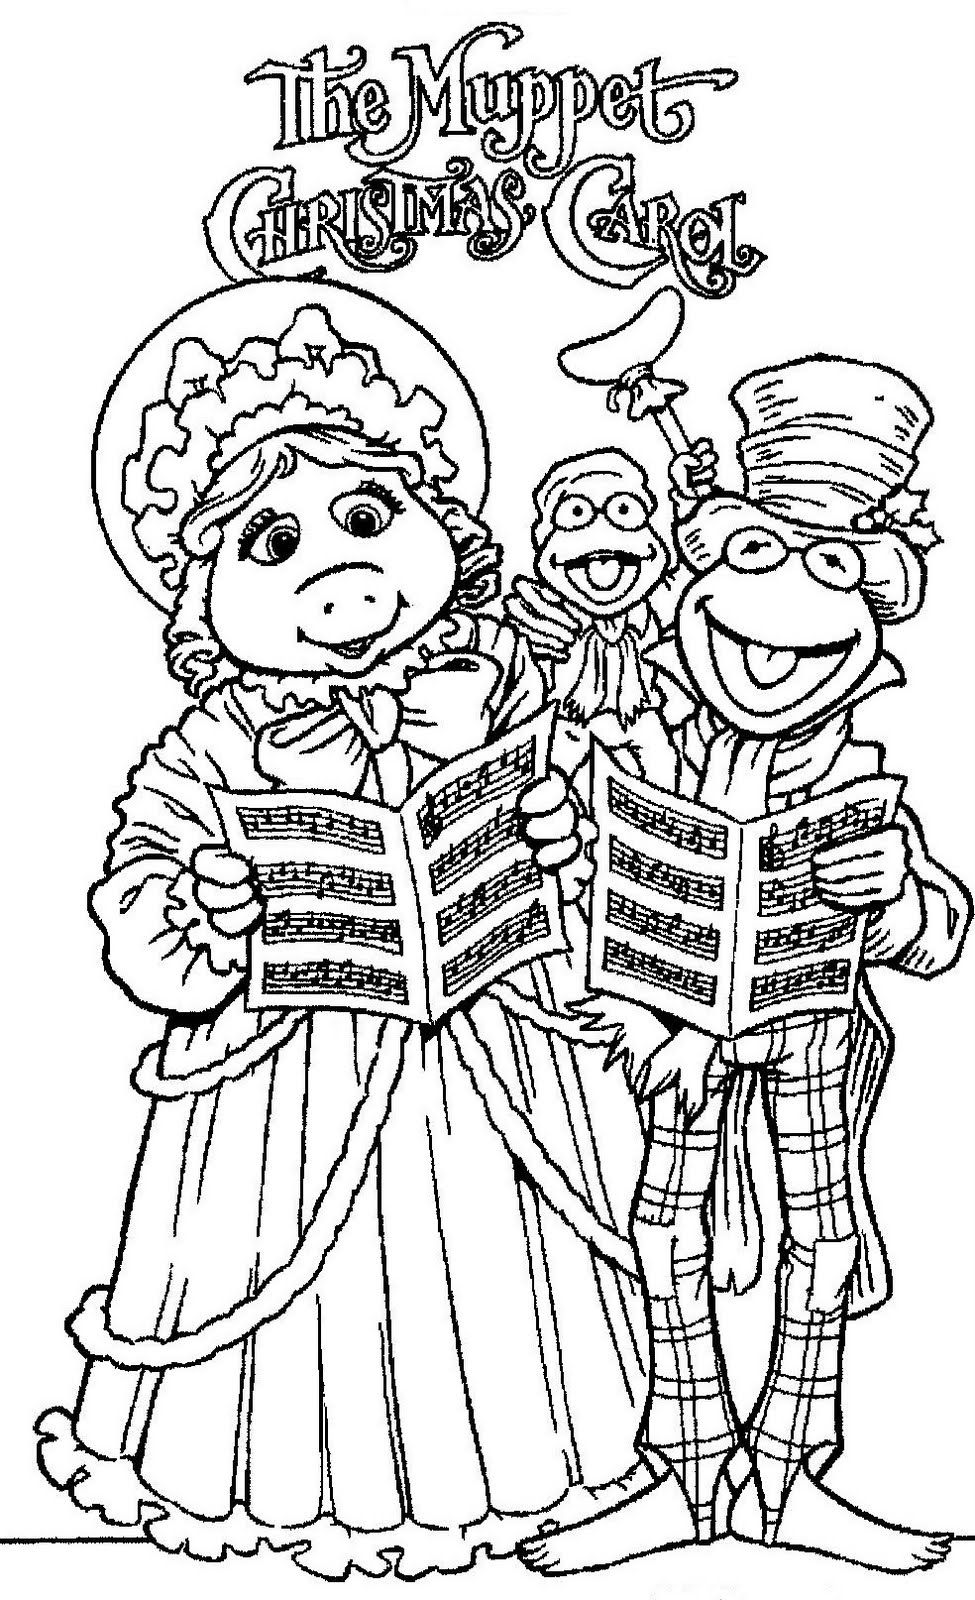 The Muppets Drawings Coloring Child Coloring And Children Wallpapers Clipart Best Cli Baby Coloring Pages Christmas Music Coloring Christmas Coloring Pages